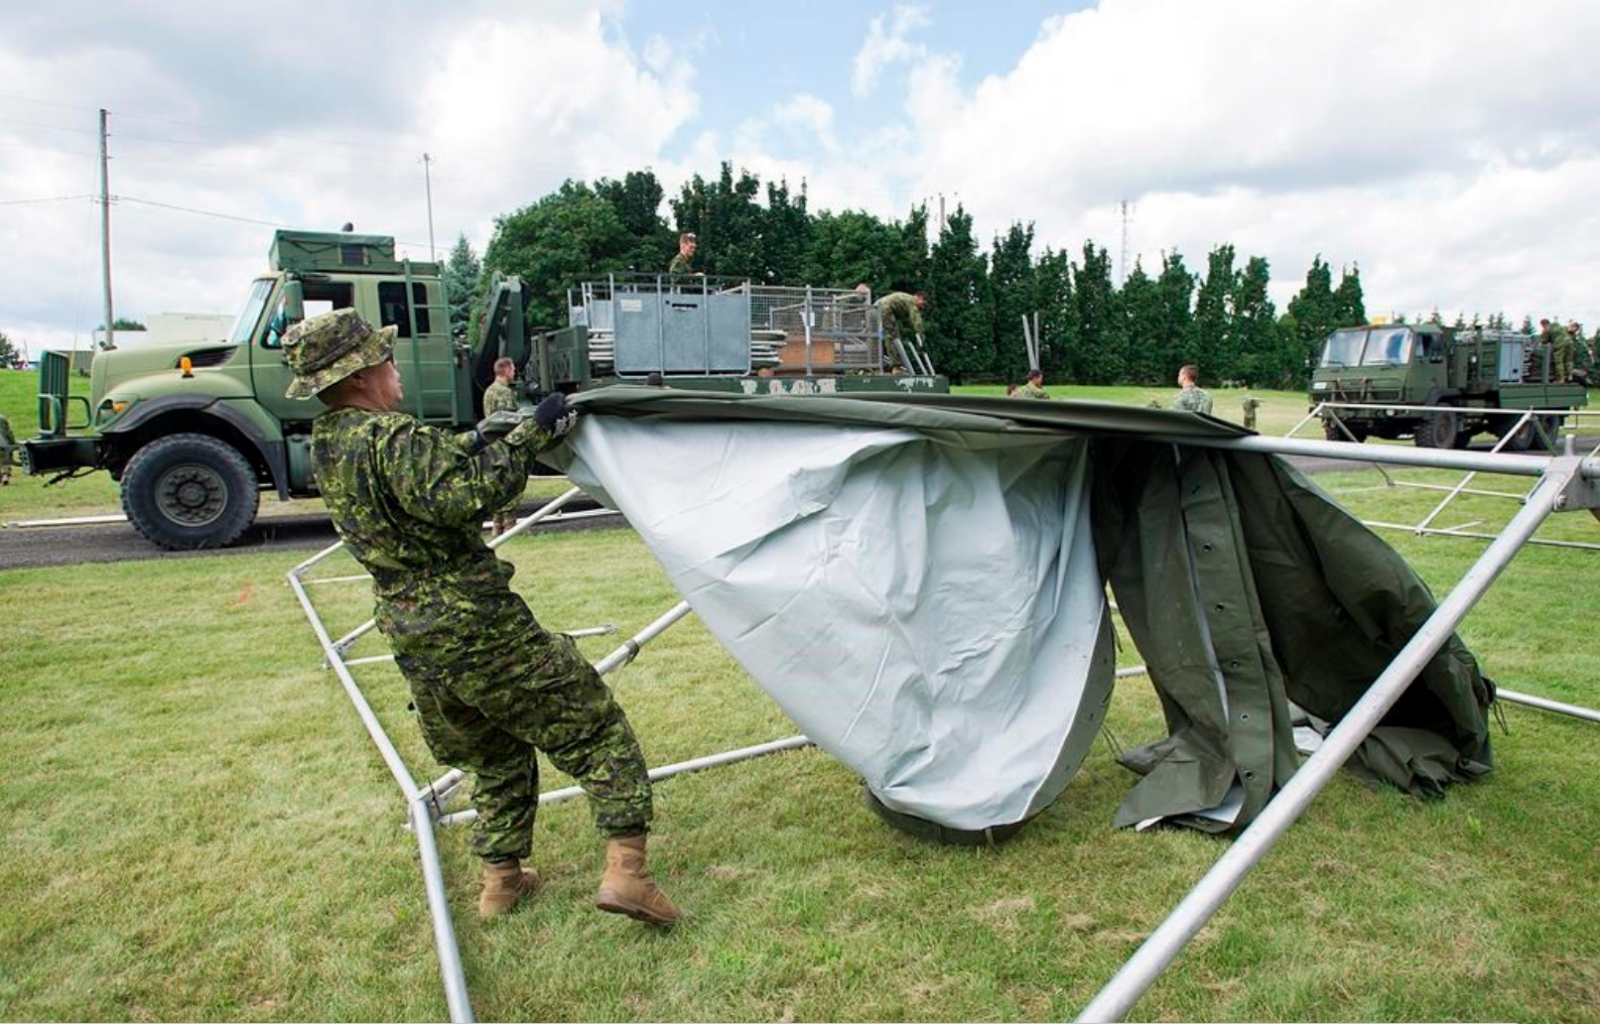 Members of the Canadian armed forces erect tents to house asylum seekers at the Canada-United States border in Lacolle Que. Wed. Aug. 9 2017. & About 100 soldiers help with the crush of asylum seekers at Quebec ...